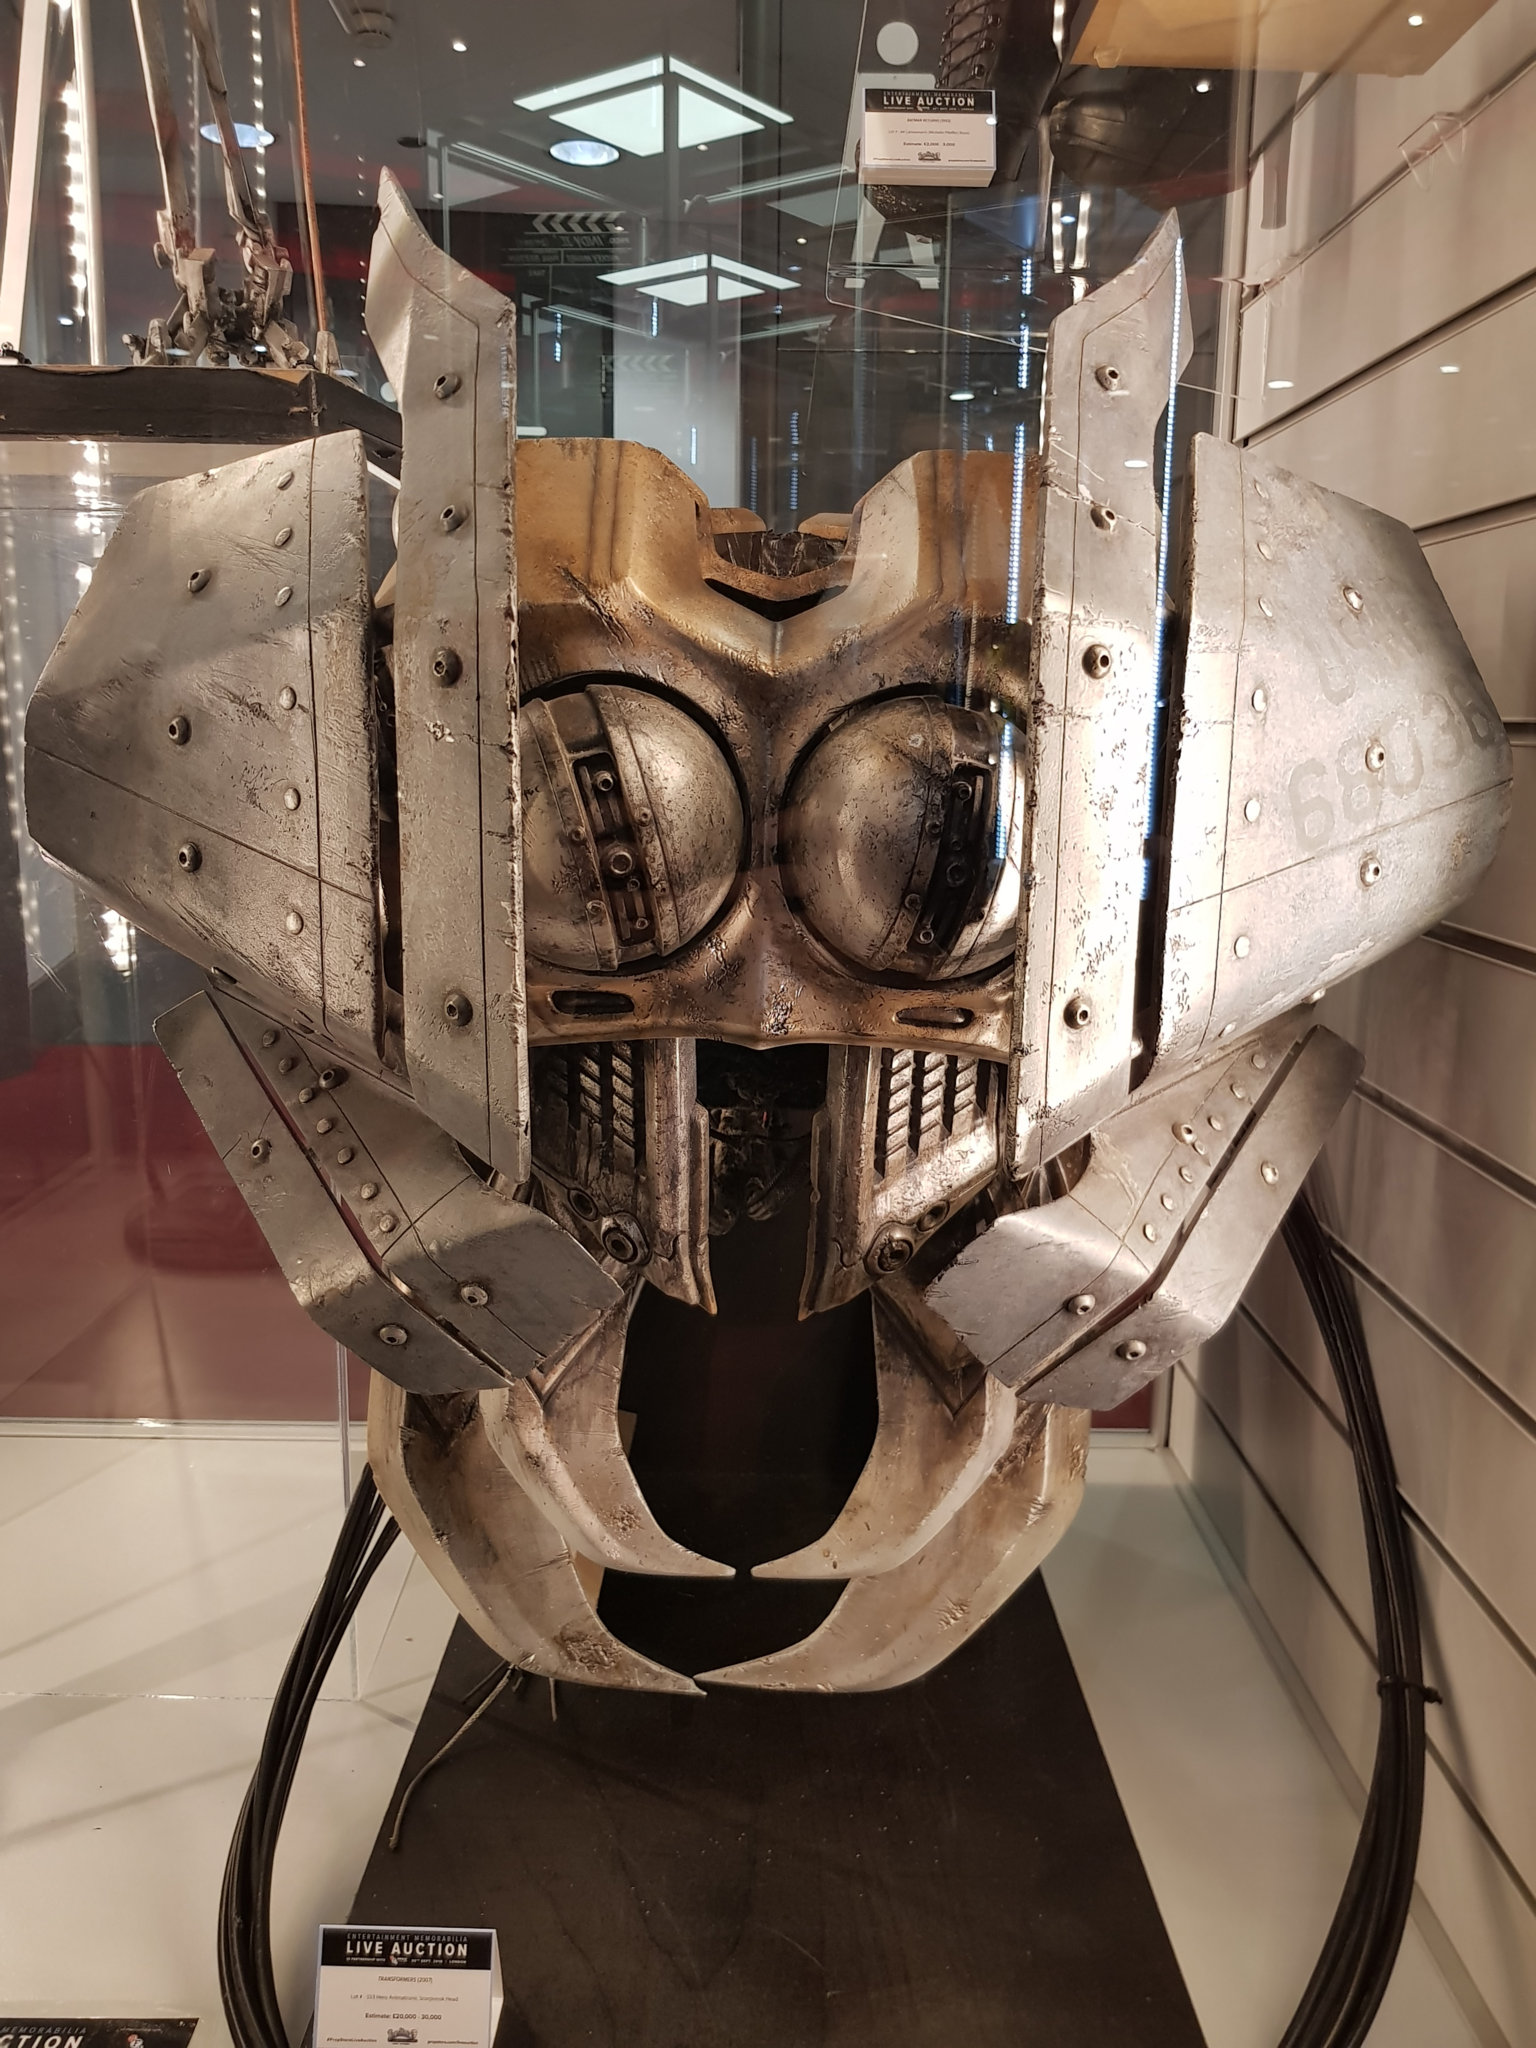 Transformers Movie Props On Display At Bfi Imax England